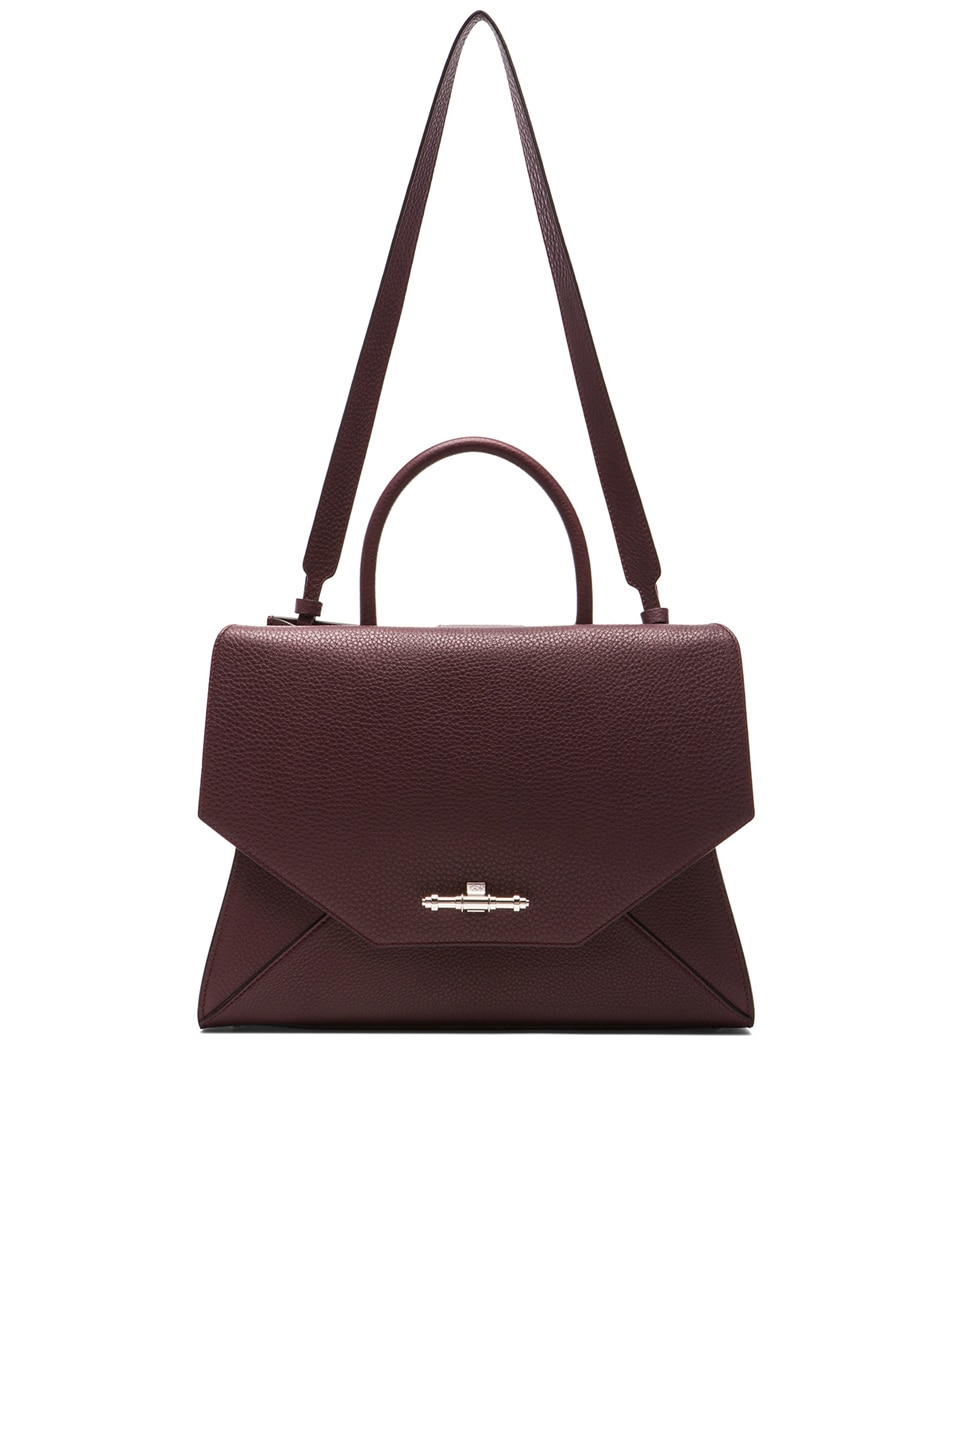 56896915aa Image 5 of Givenchy Medium Obsedia Top Handle Bag in Oxblood